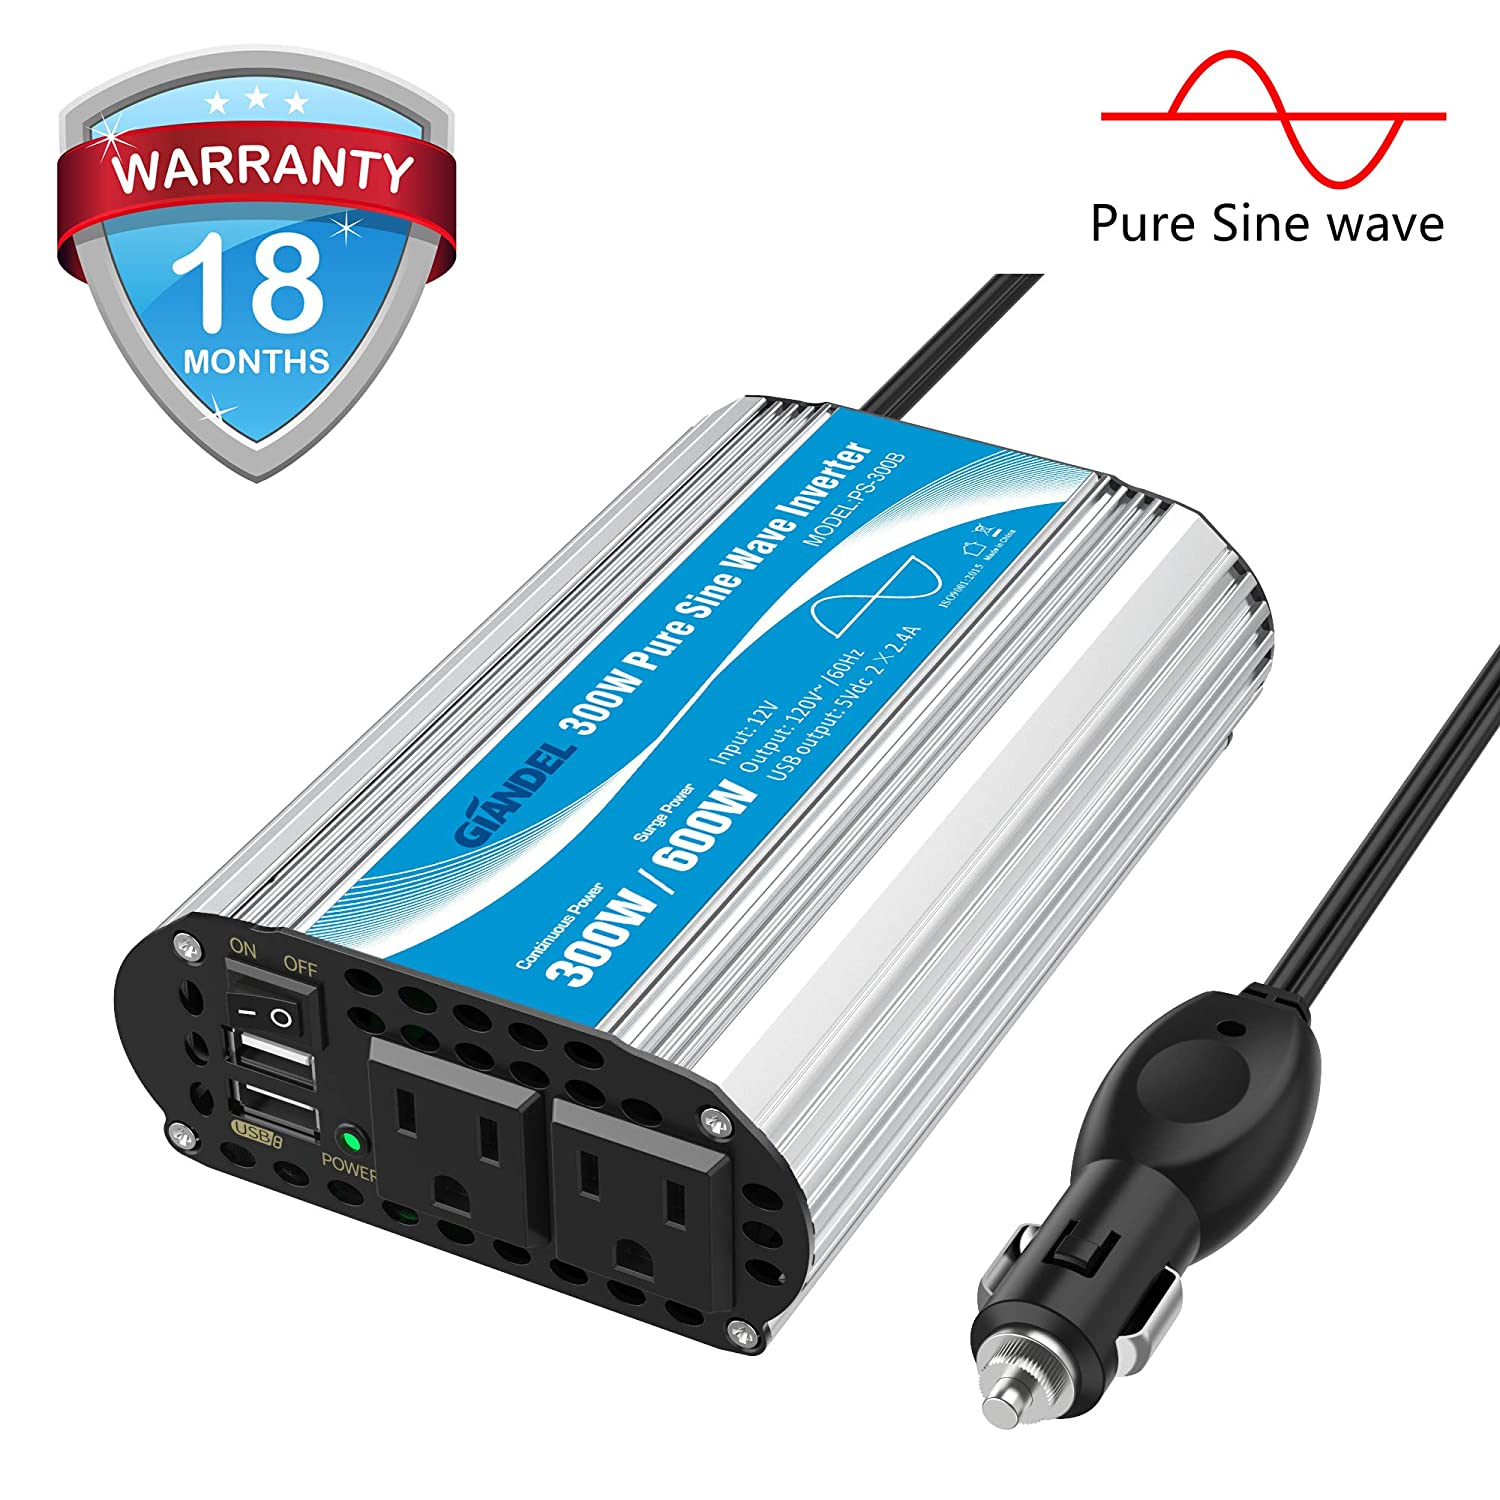 GIANDEL 300Watt Pure Sine Wave Car Power Inverter 12V DC to 120V AC 4.8A Dual USB AC outlets Tablets Laptops Smartphones